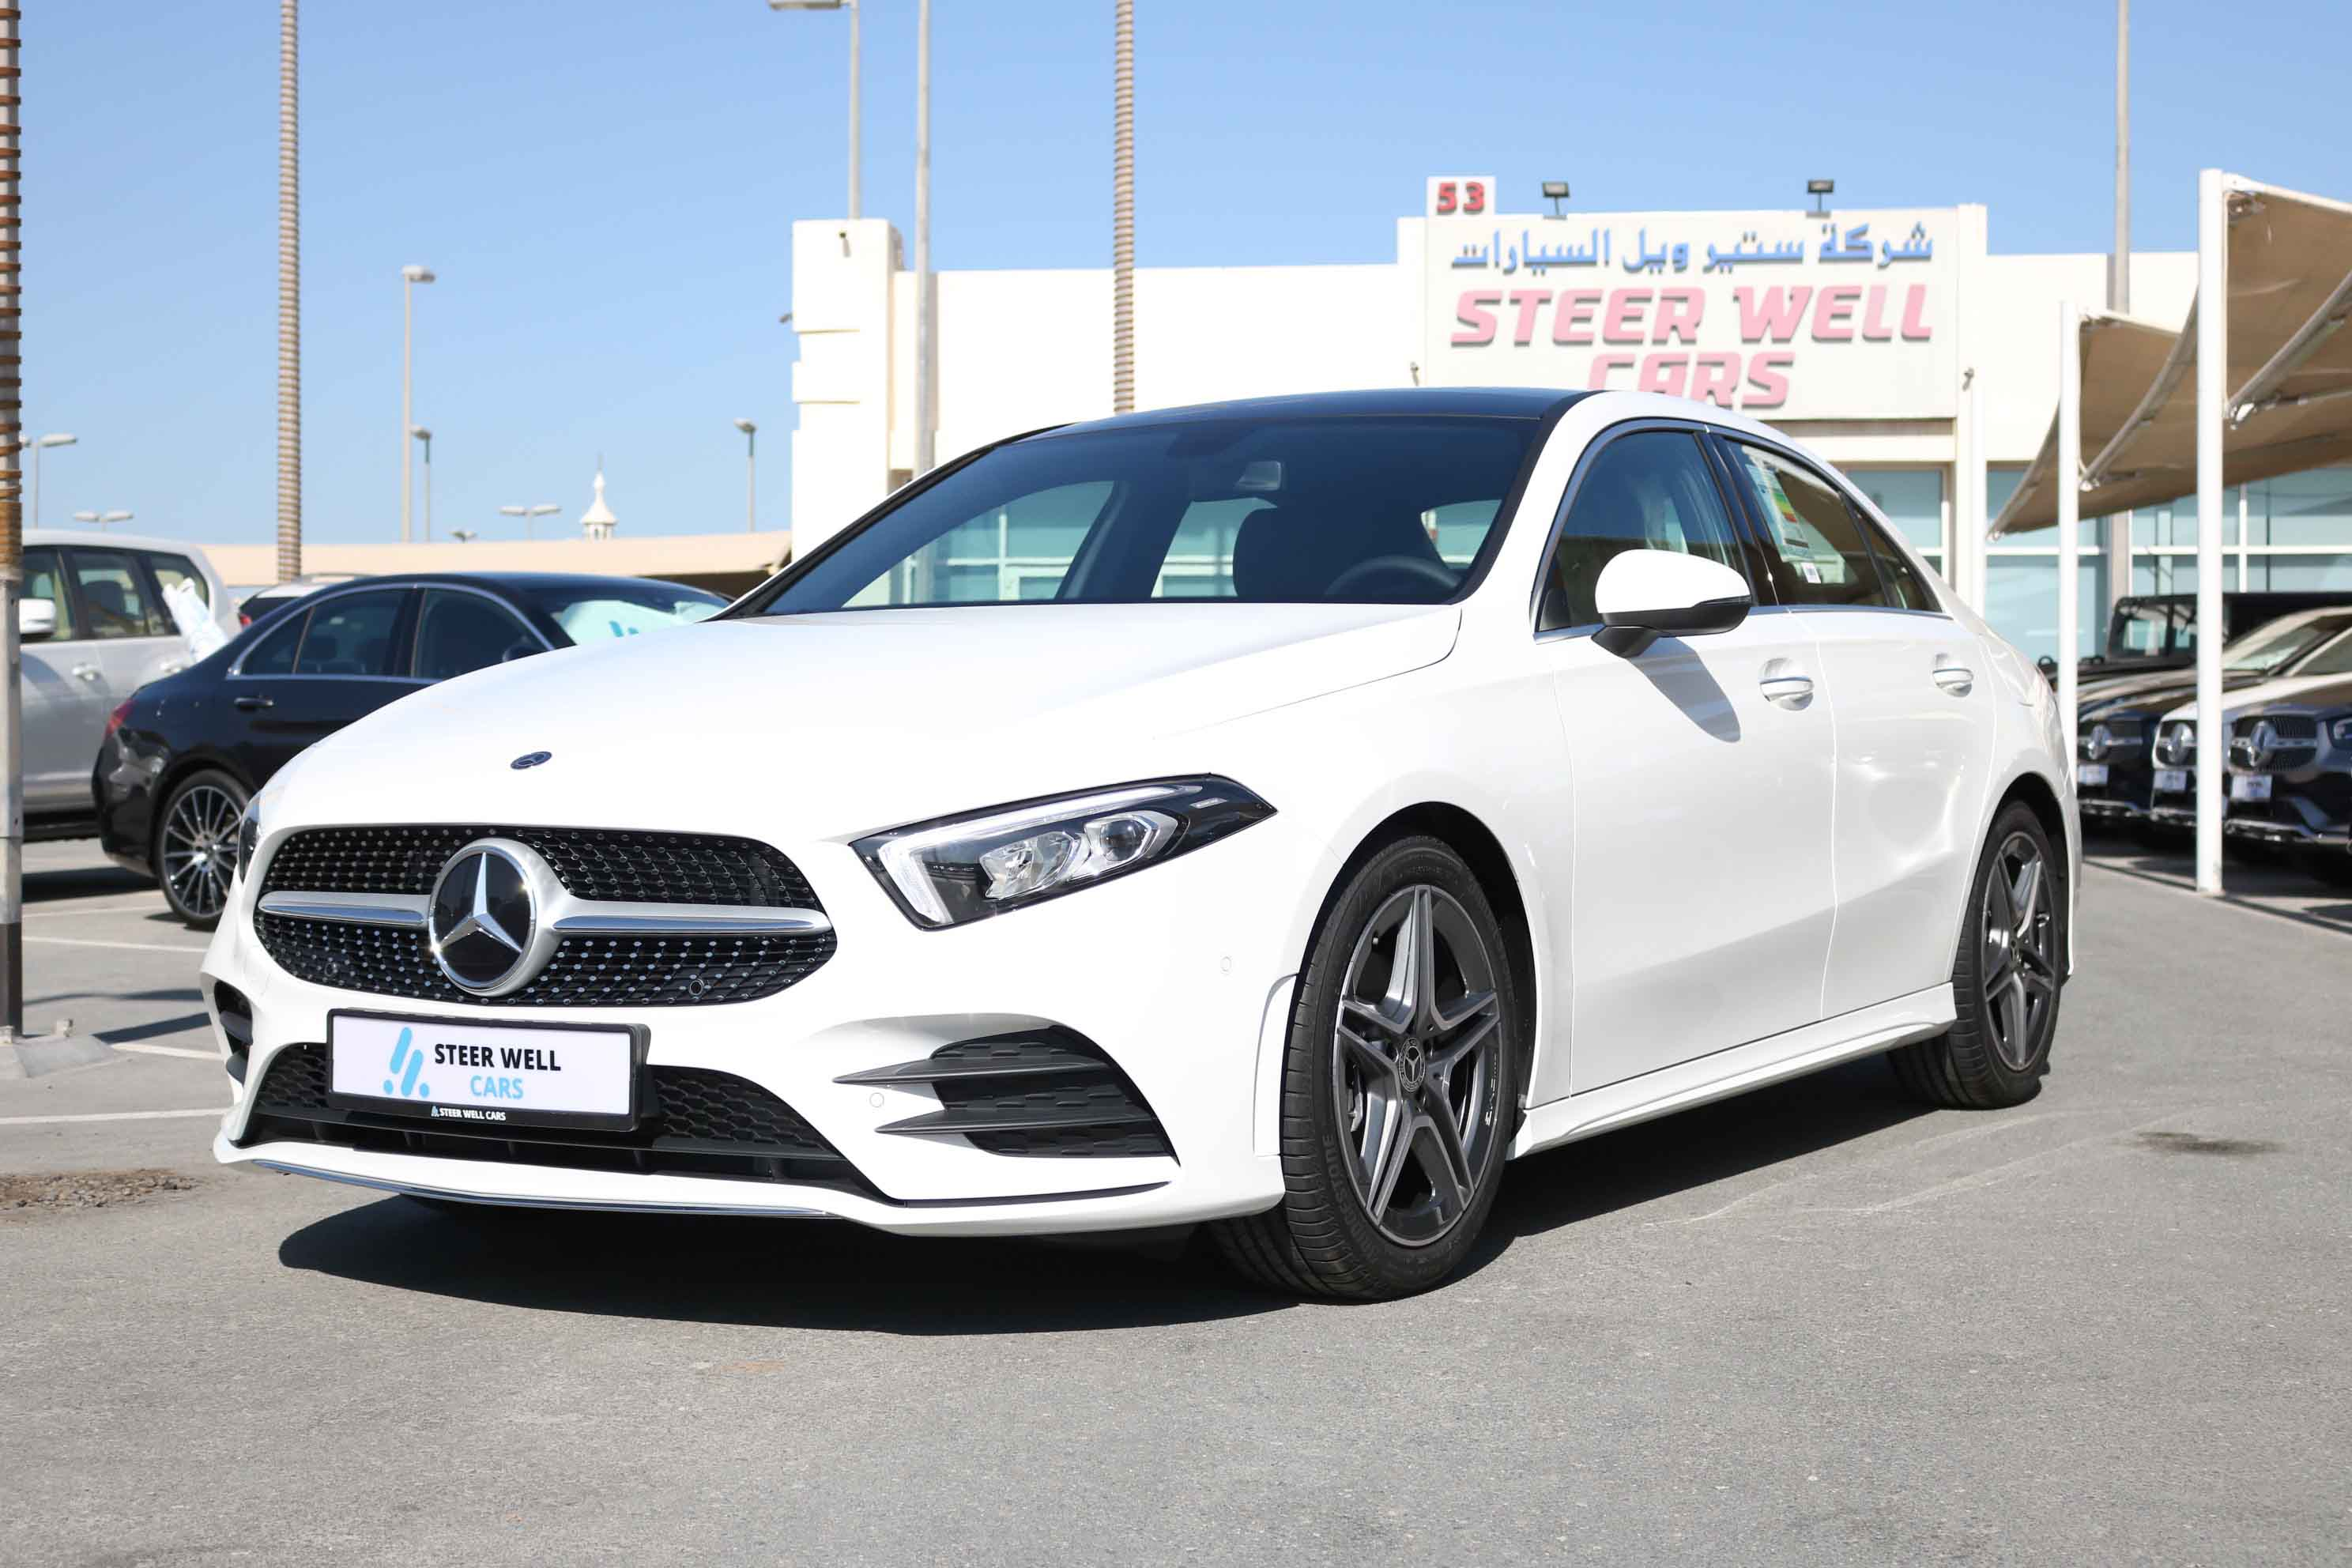 MERCEDES-BENZ AMG A200 LUXURY SEDAN